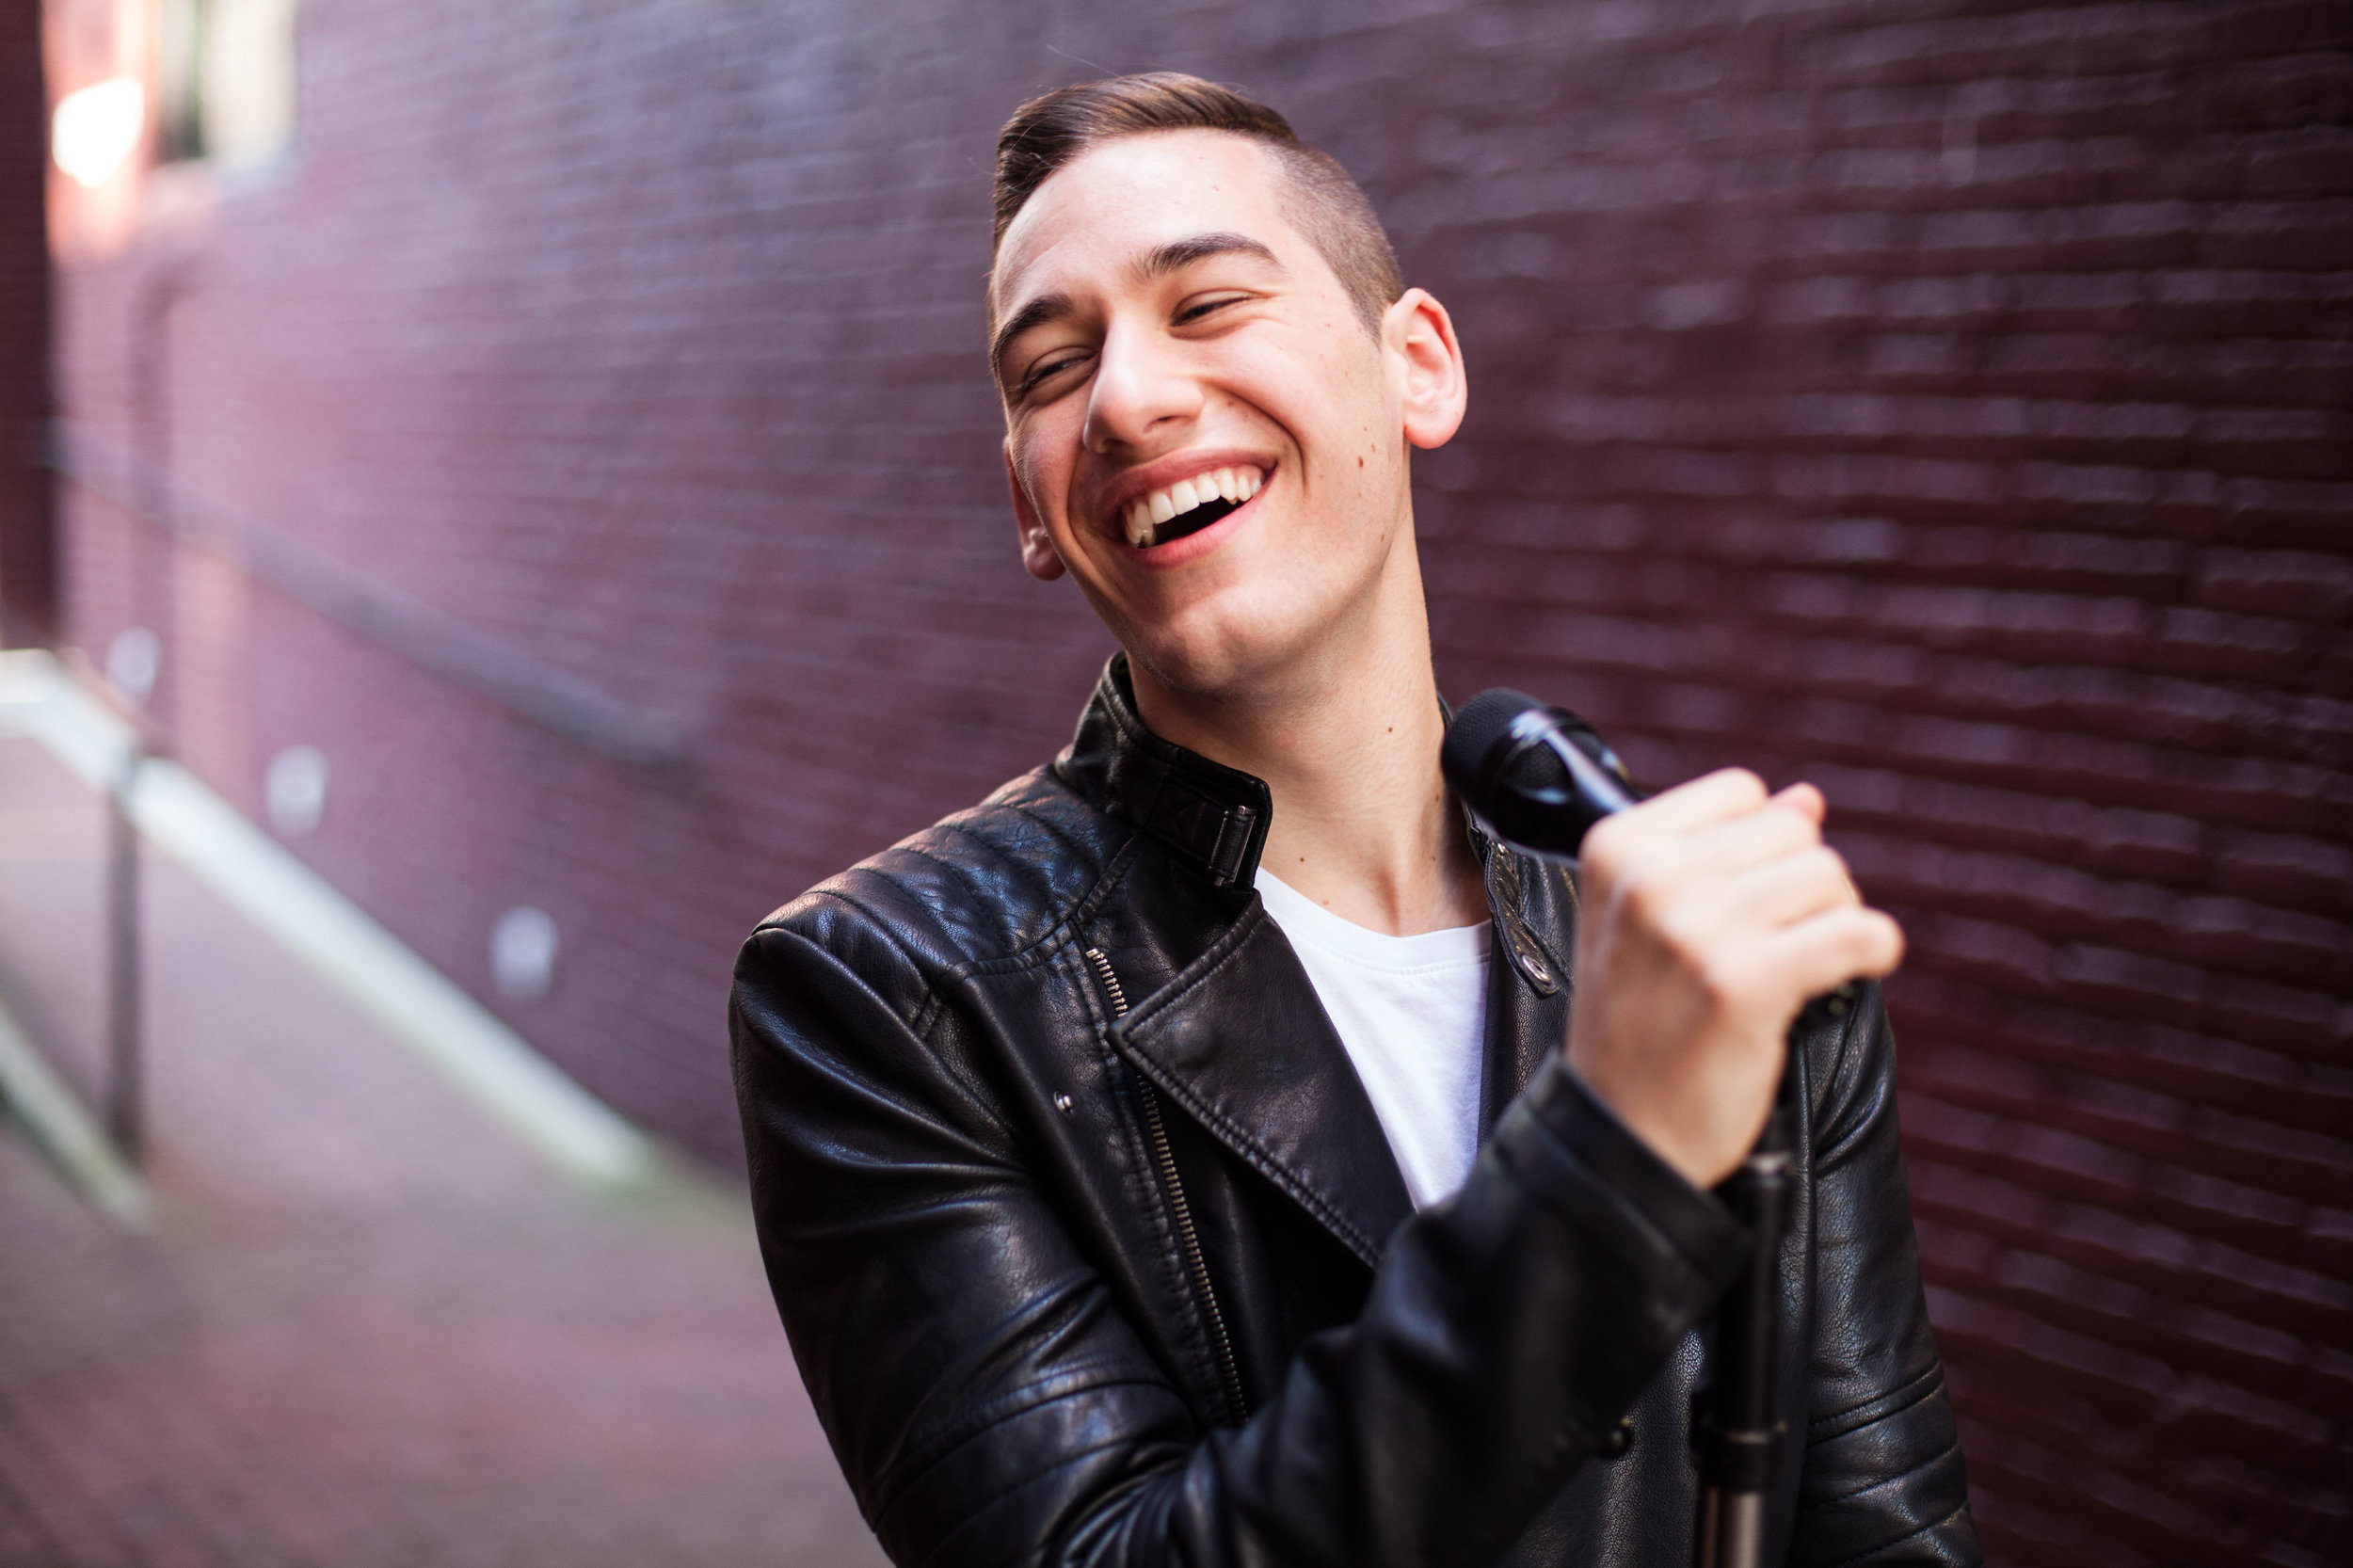 Stephen scaccia - Stephen is a 27 year old singer-songwriter from Burnaby, British Columbia. He performs regularly at community events, sports games, fundraisers, Pride events and charities around the Lower Mainland, and was voted